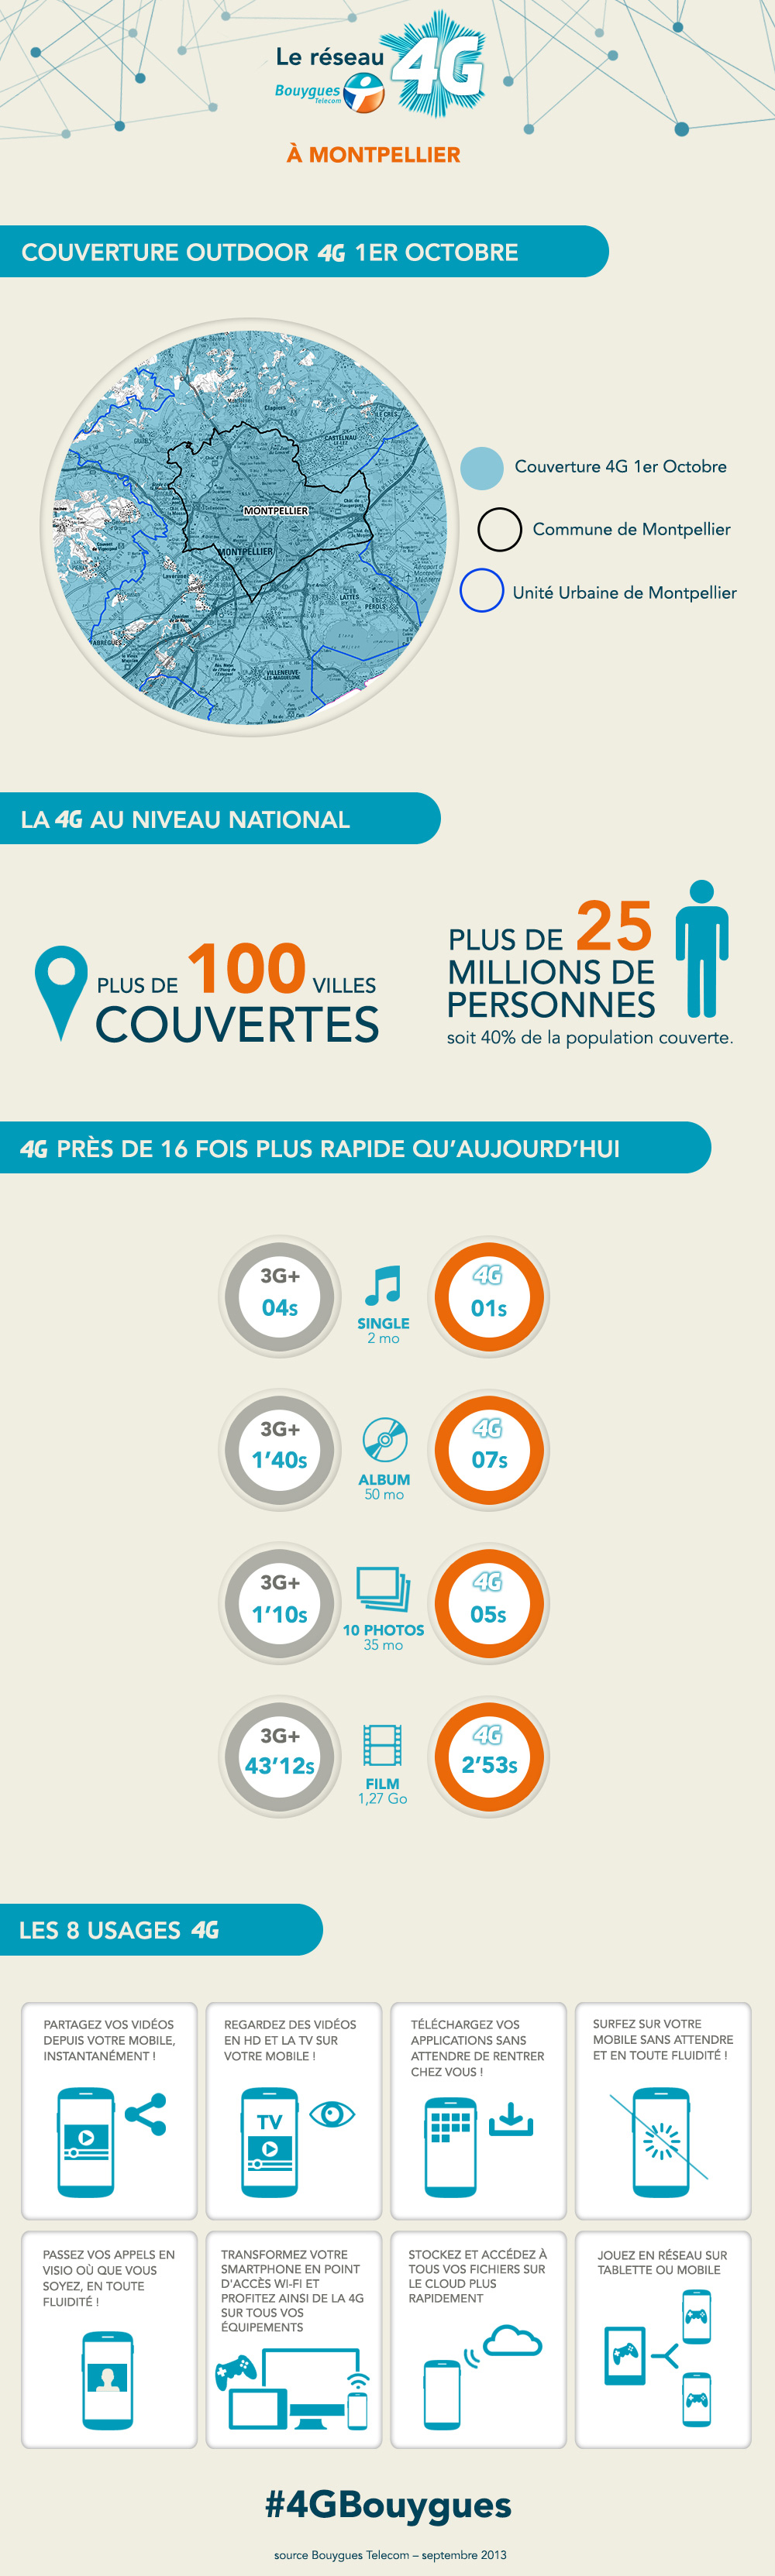 infographie_bouygues-4G-montpellier